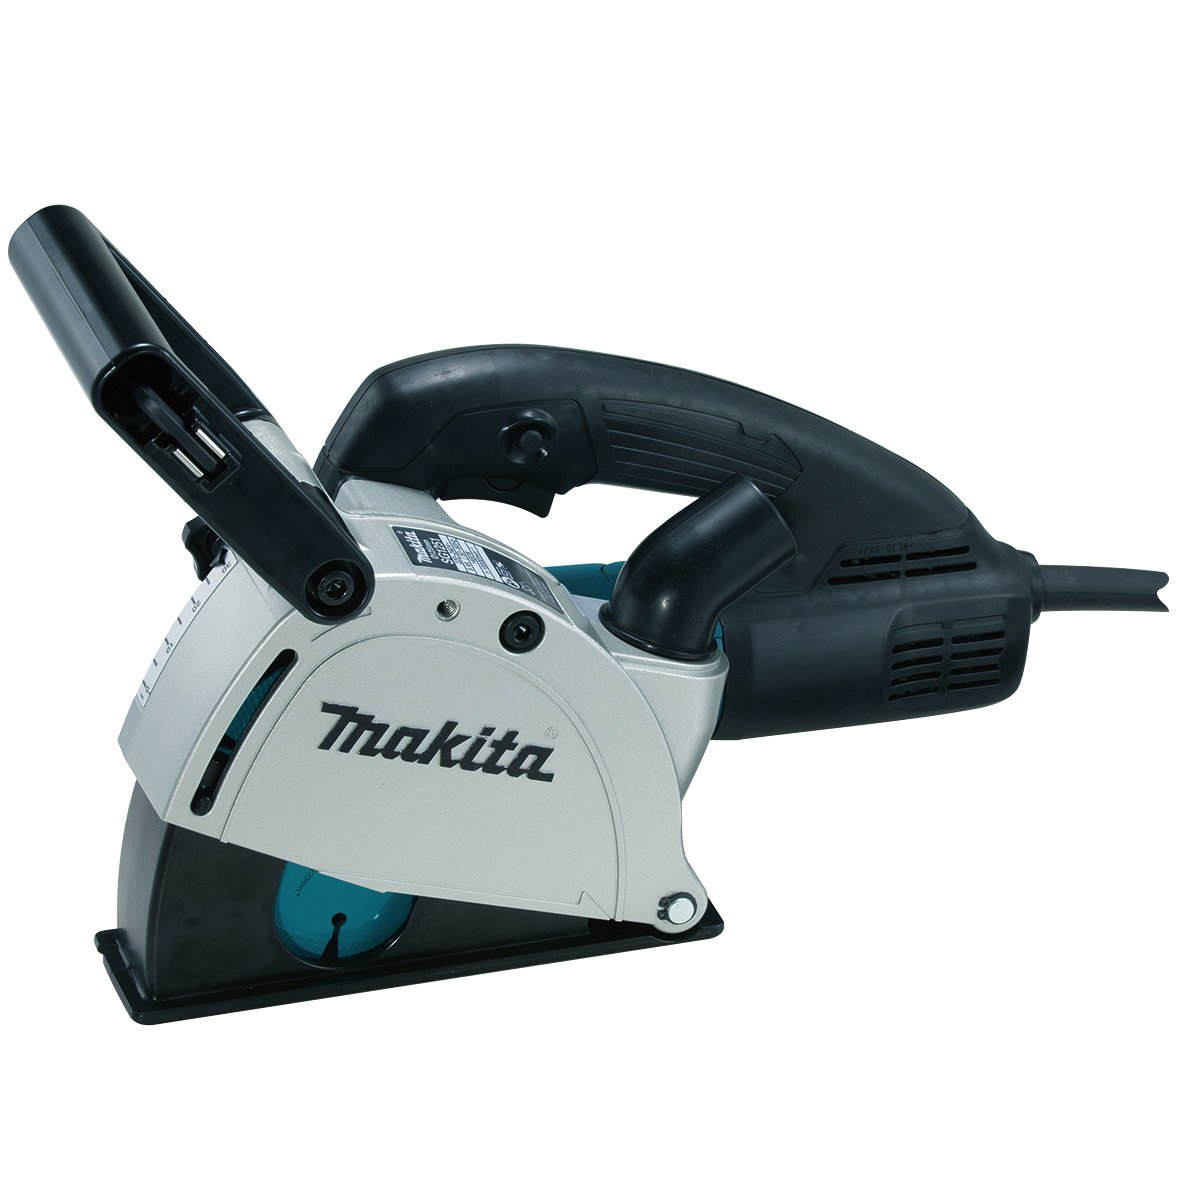 Makita SG1251J rozadora, 1.4 W, 30mm: Amazon.es: Bricolaje y ...